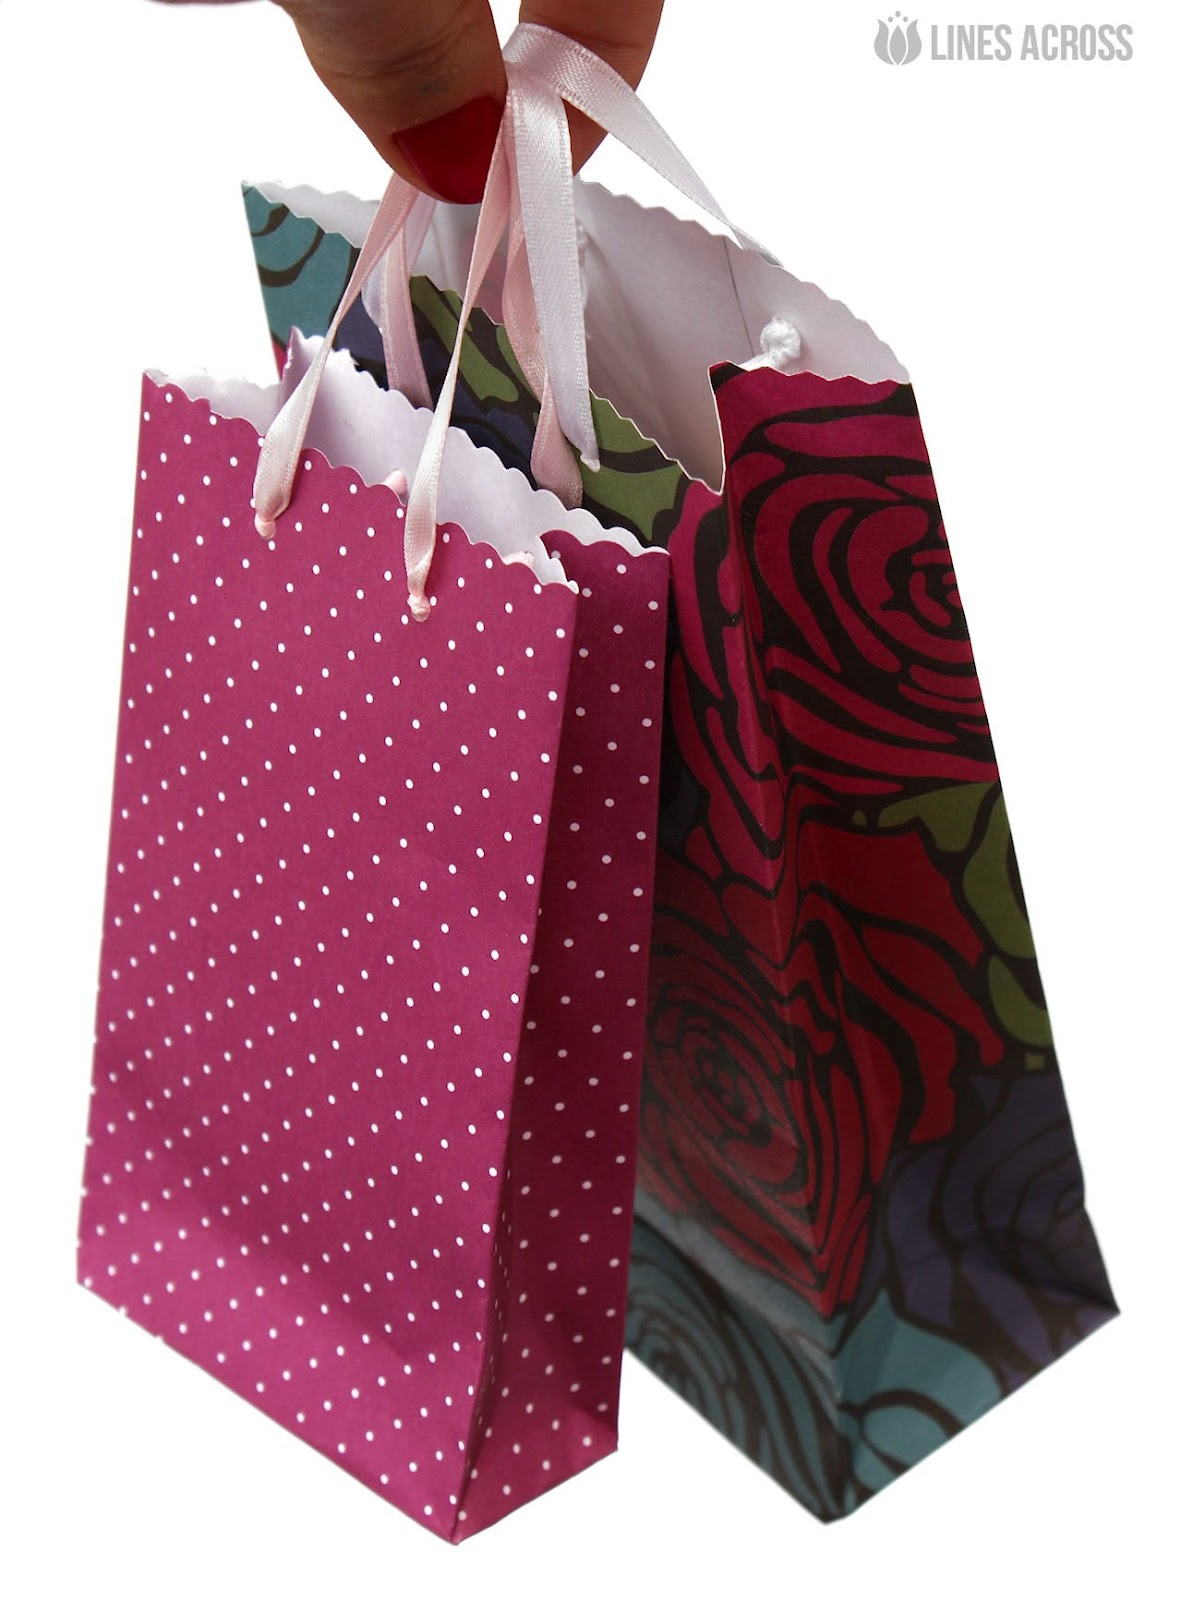 Paper Gift Bags Paper Gift Bag Tutorial With Lines Across Inspiration